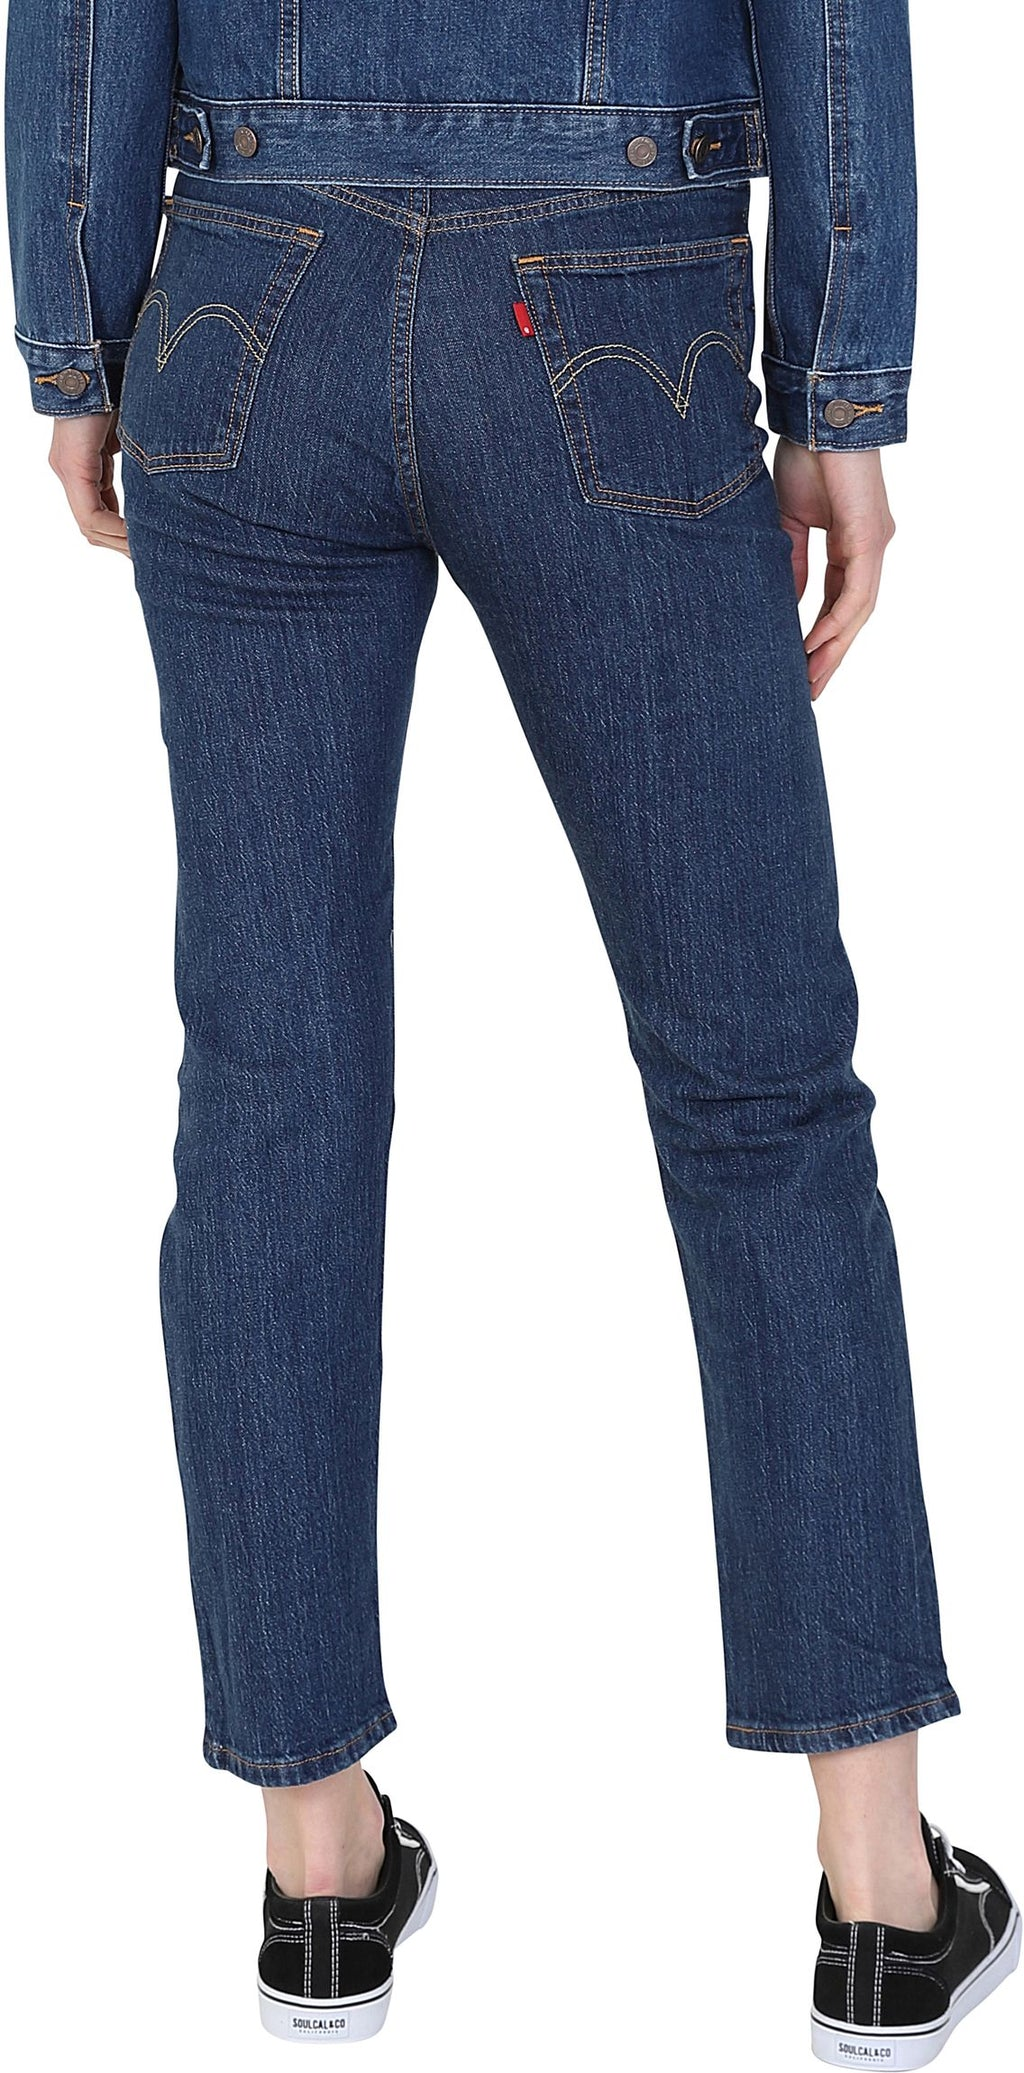 Levi's Women's 501 Original Crop Denim Jeans Blue